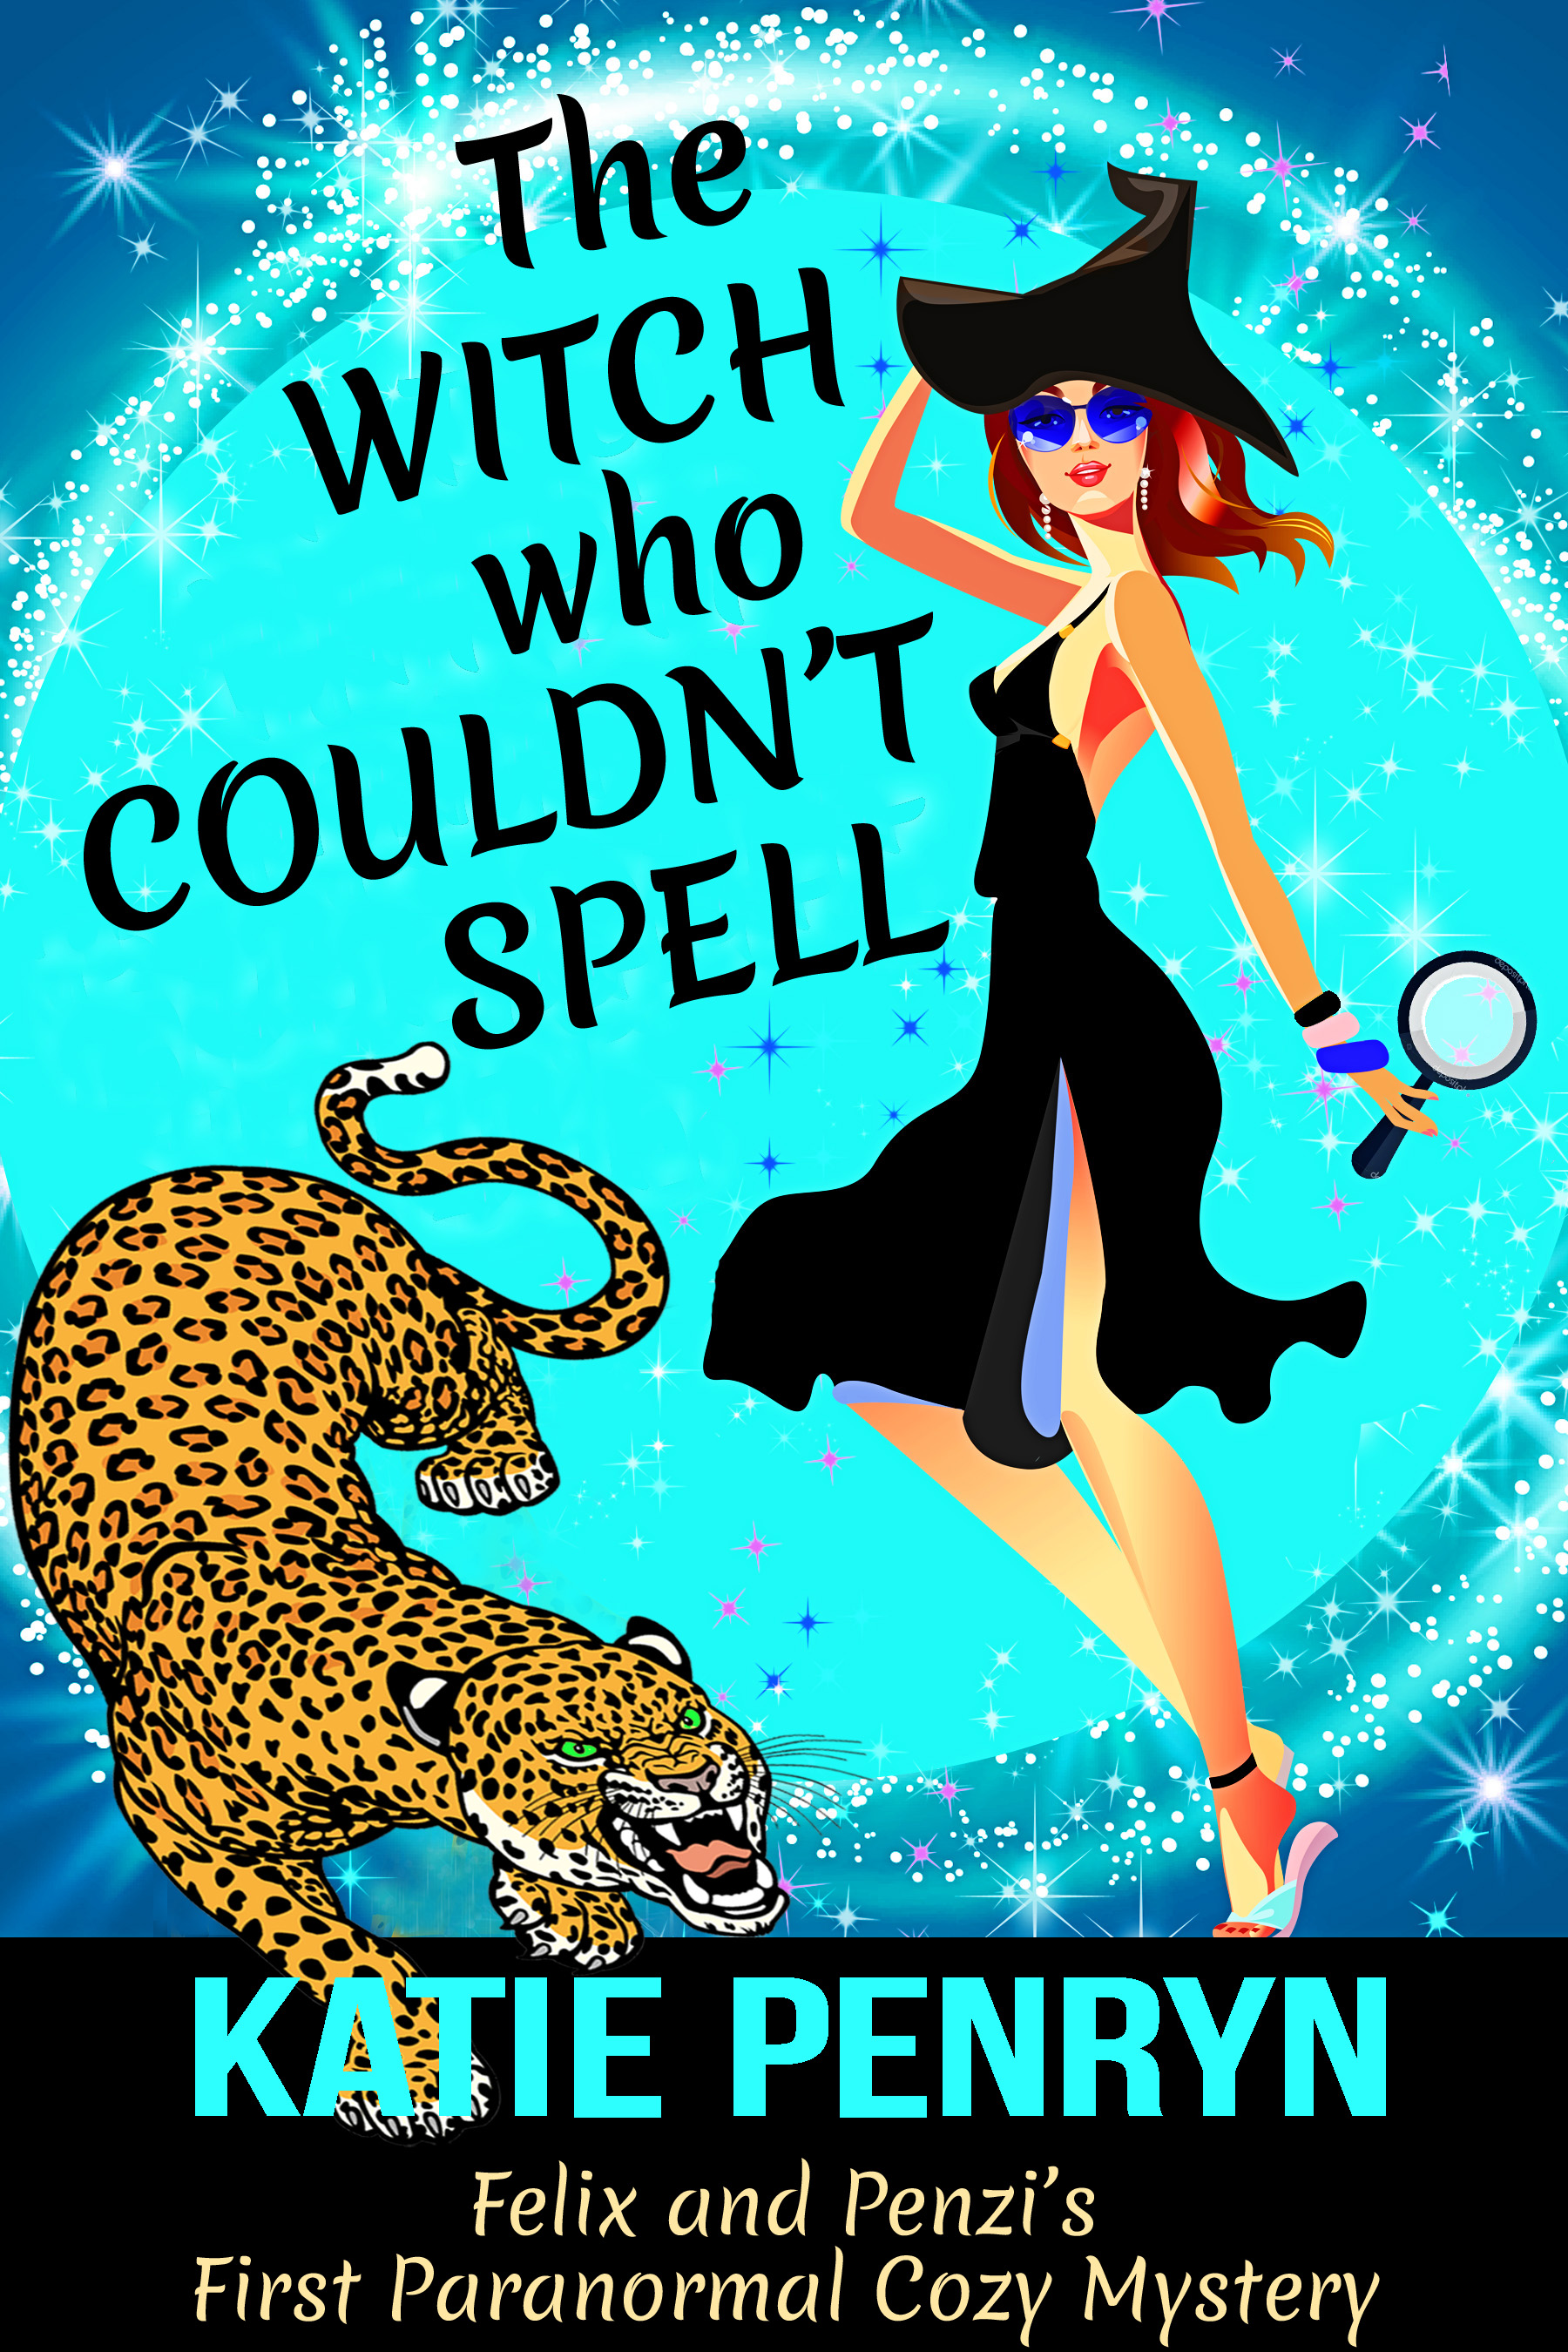 The Witch who Couldn't Spell (Mpenzi Munro Mysteries, #1)